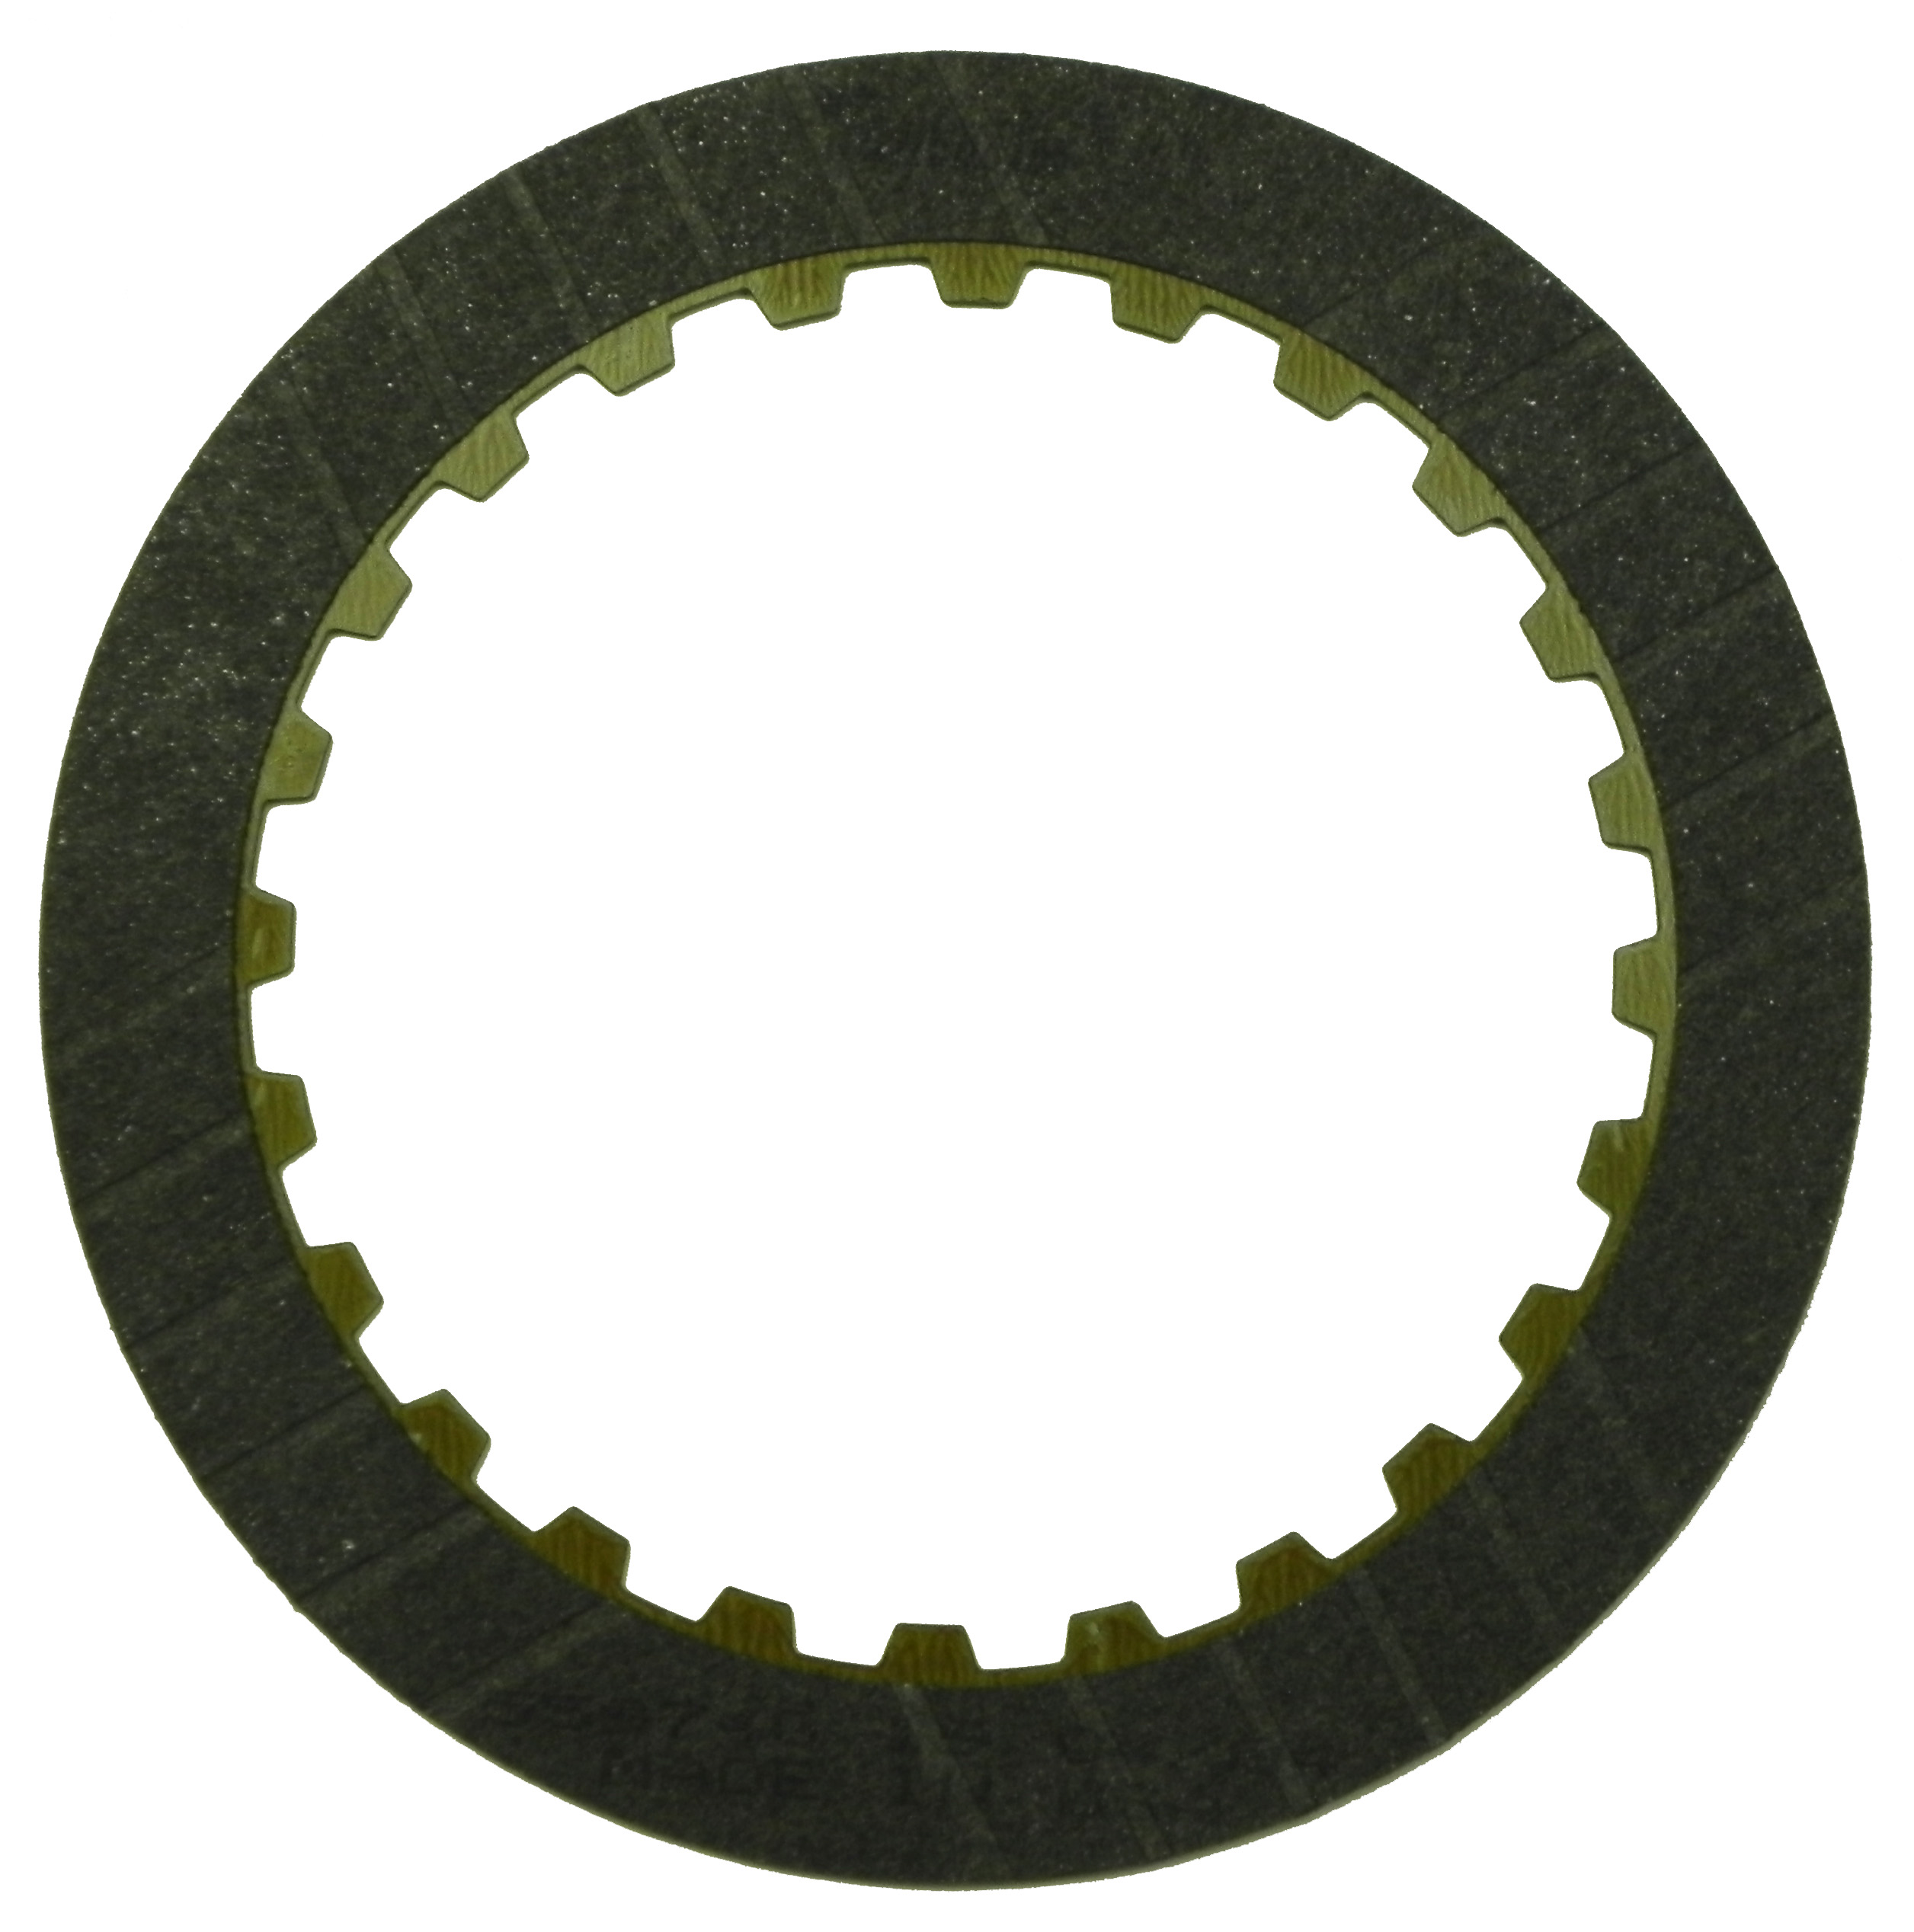 R559740 | 1981-1997 Friction Clutch Plate High Energy Direct K1 Clutch Waved